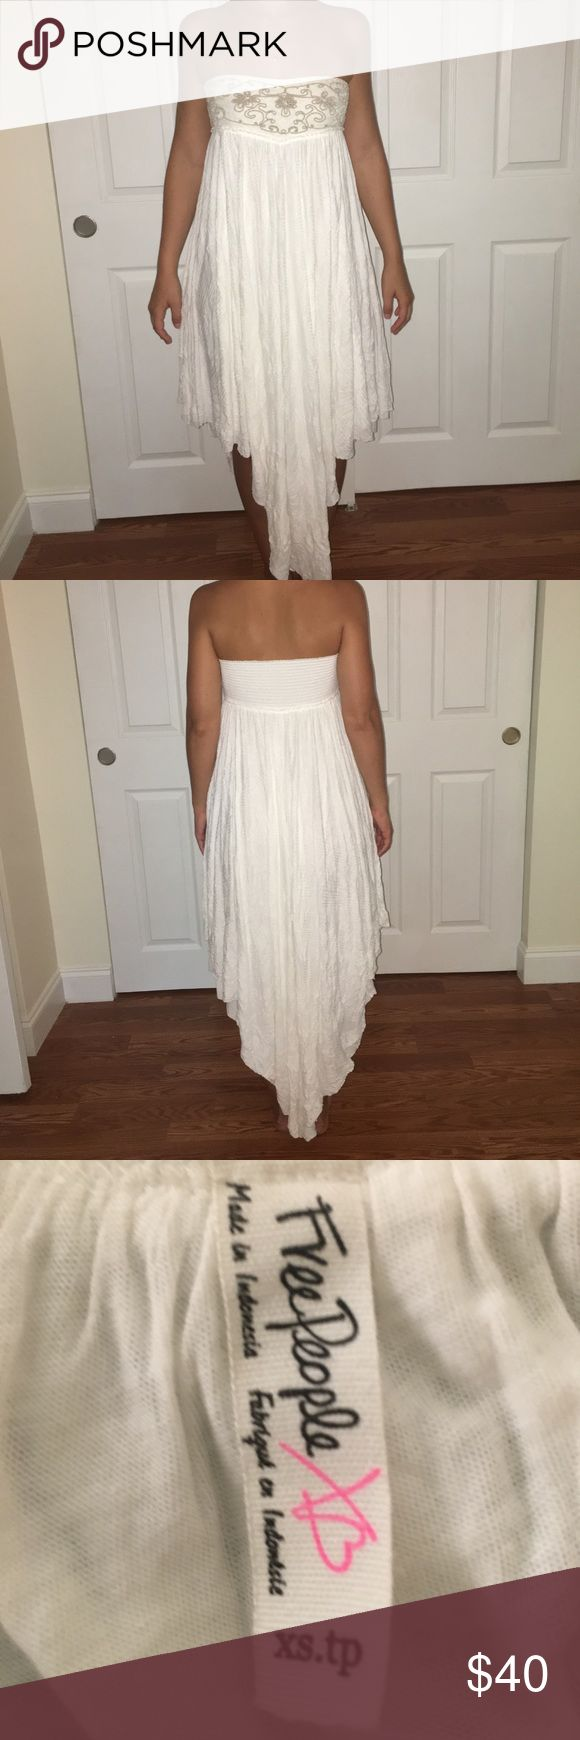 Free people white dress Beautiful gauzy white dress. Strapless and has brown cord embroidery on the bust line. Free People Dresses